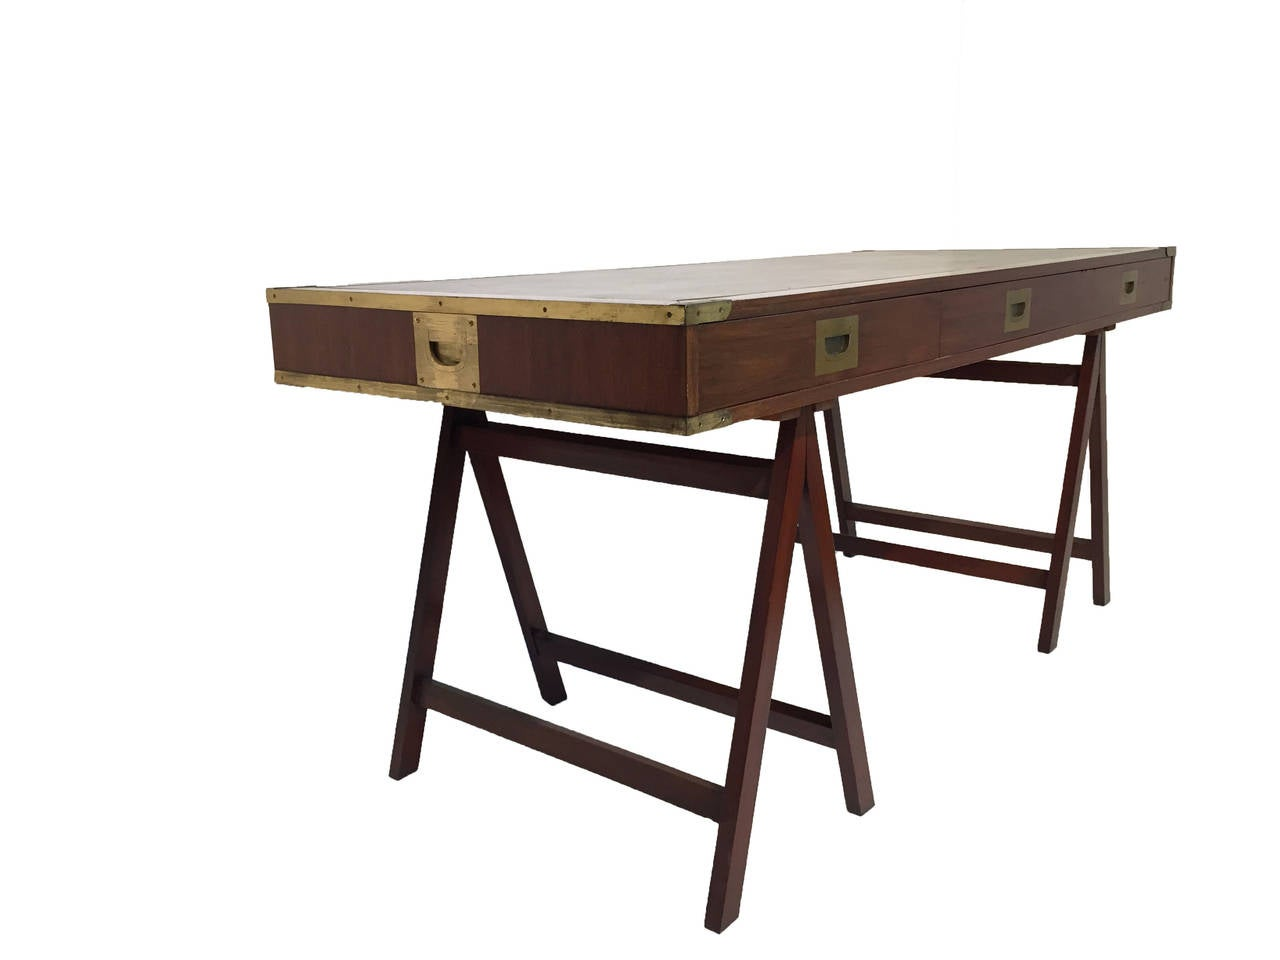 Mahogany asian campaign style desk at 1stdibs for Asian inspired desk